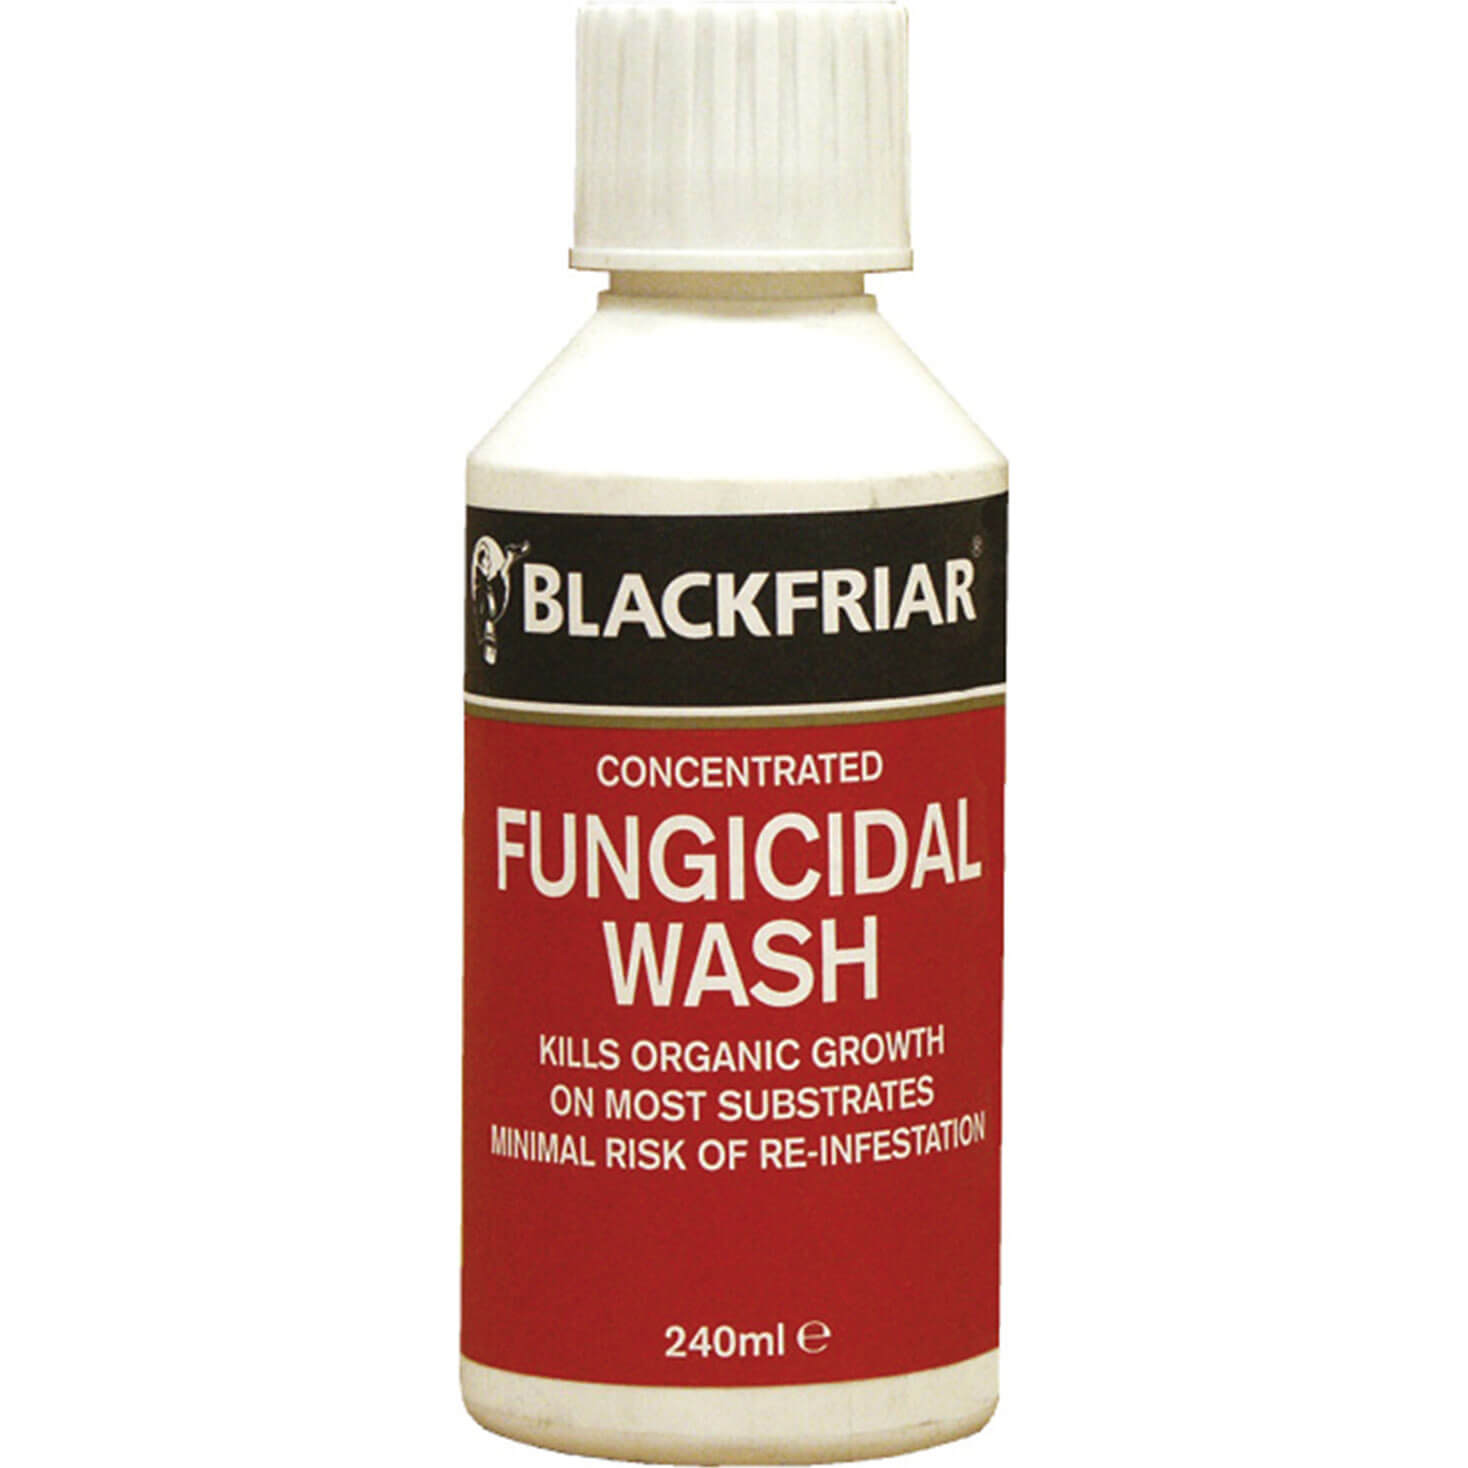 Image of Blackfriar Concentrated Fungicidal Wash 240ml